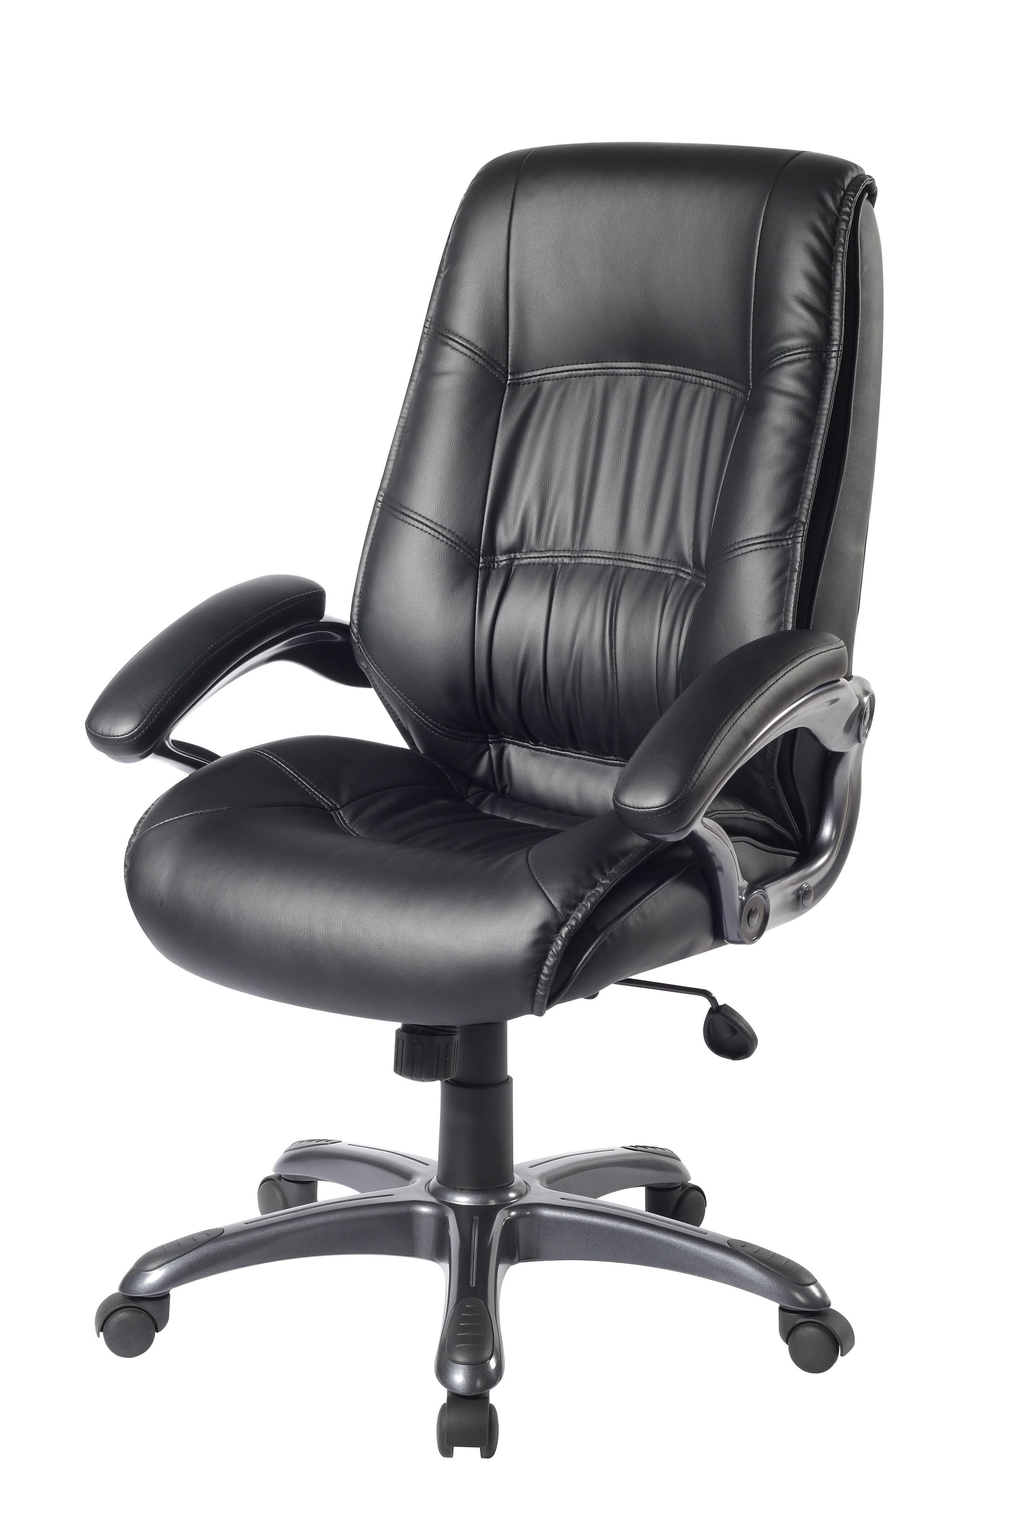 Black Leather Office Chairs (Image 4 of 27)